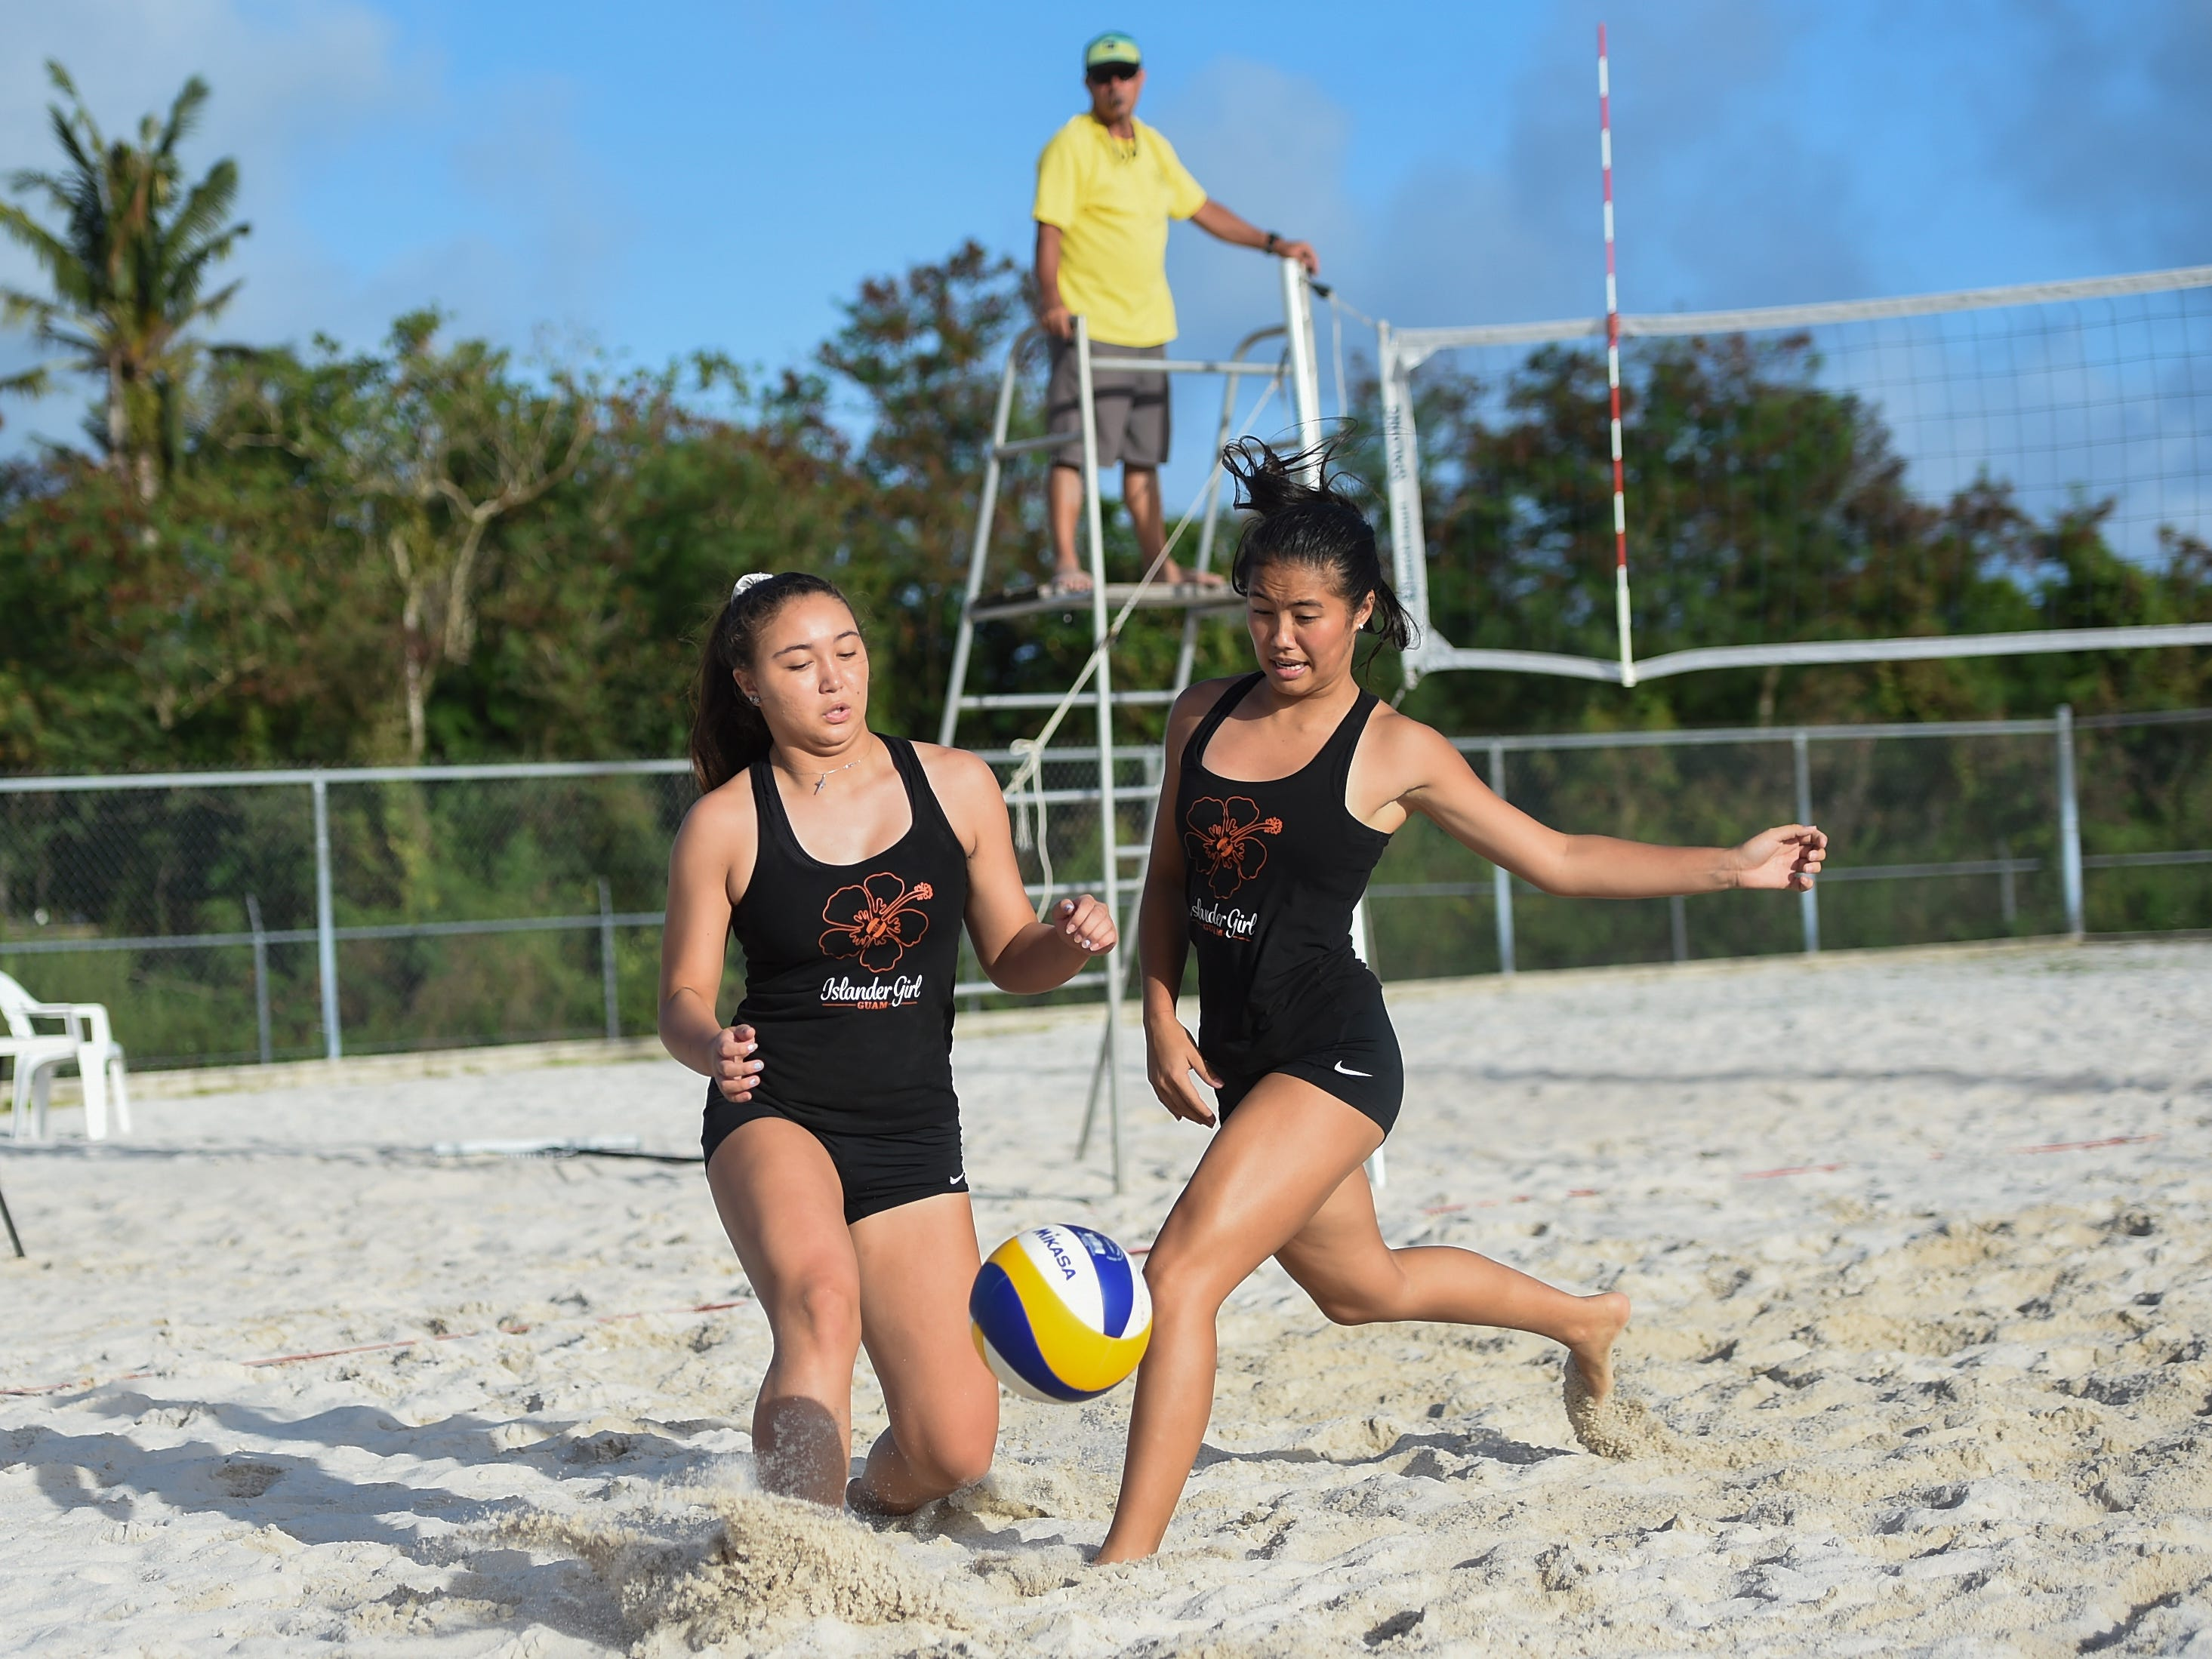 St. John's Knights White teammates Hallie Wigsten, right, and Tylee Shepherd misjudge a volley during the IIAAG Beach Volleyball championship game at the Guam Football Association National Training Center in Dededo, March 12, 2019.